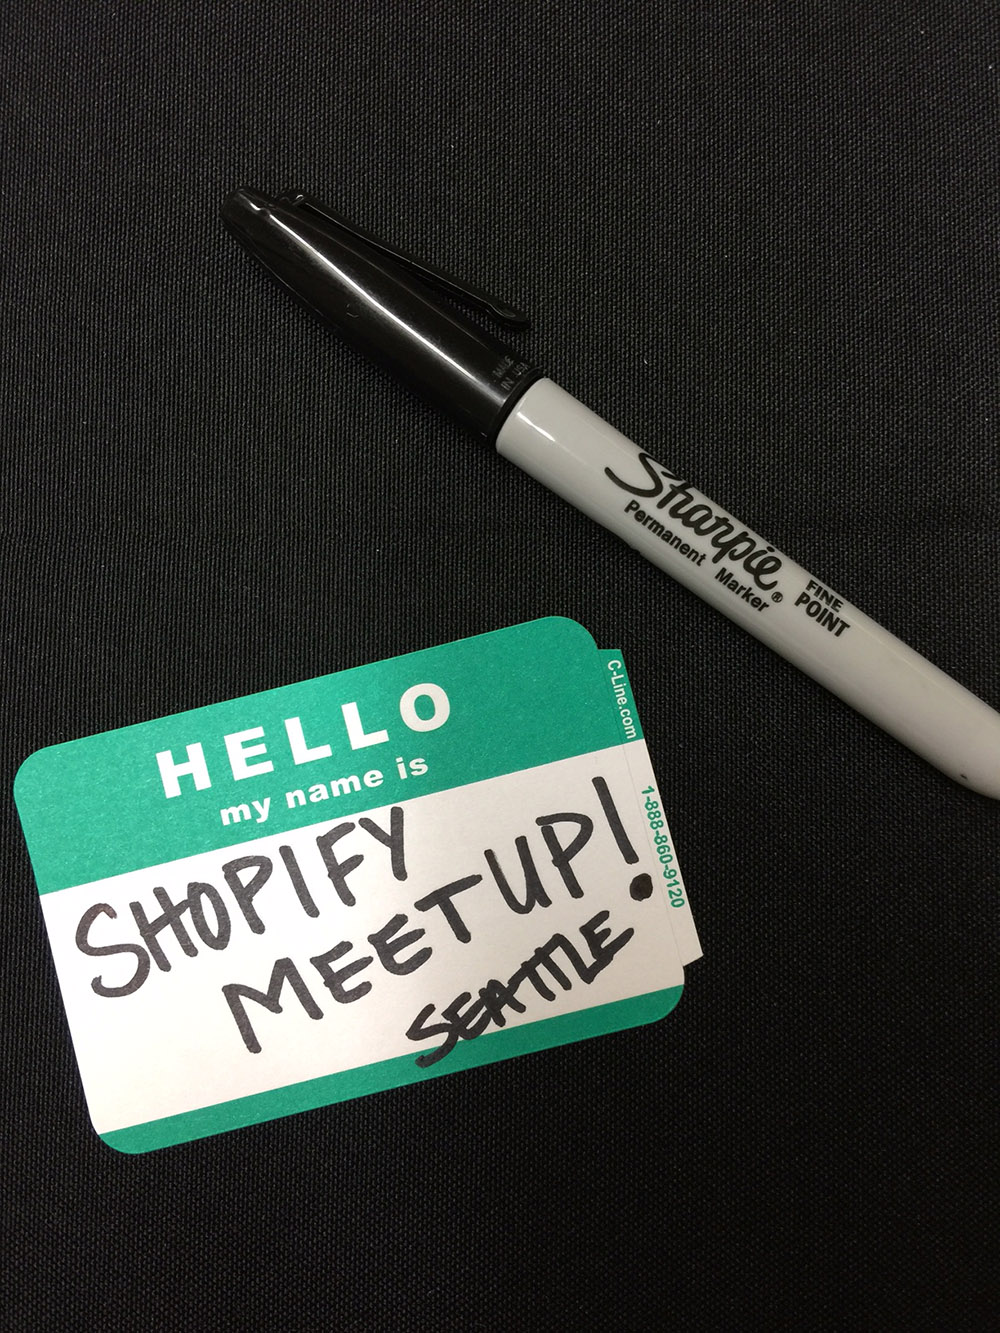 Shopify Seattle Event – Marketing and Metrics